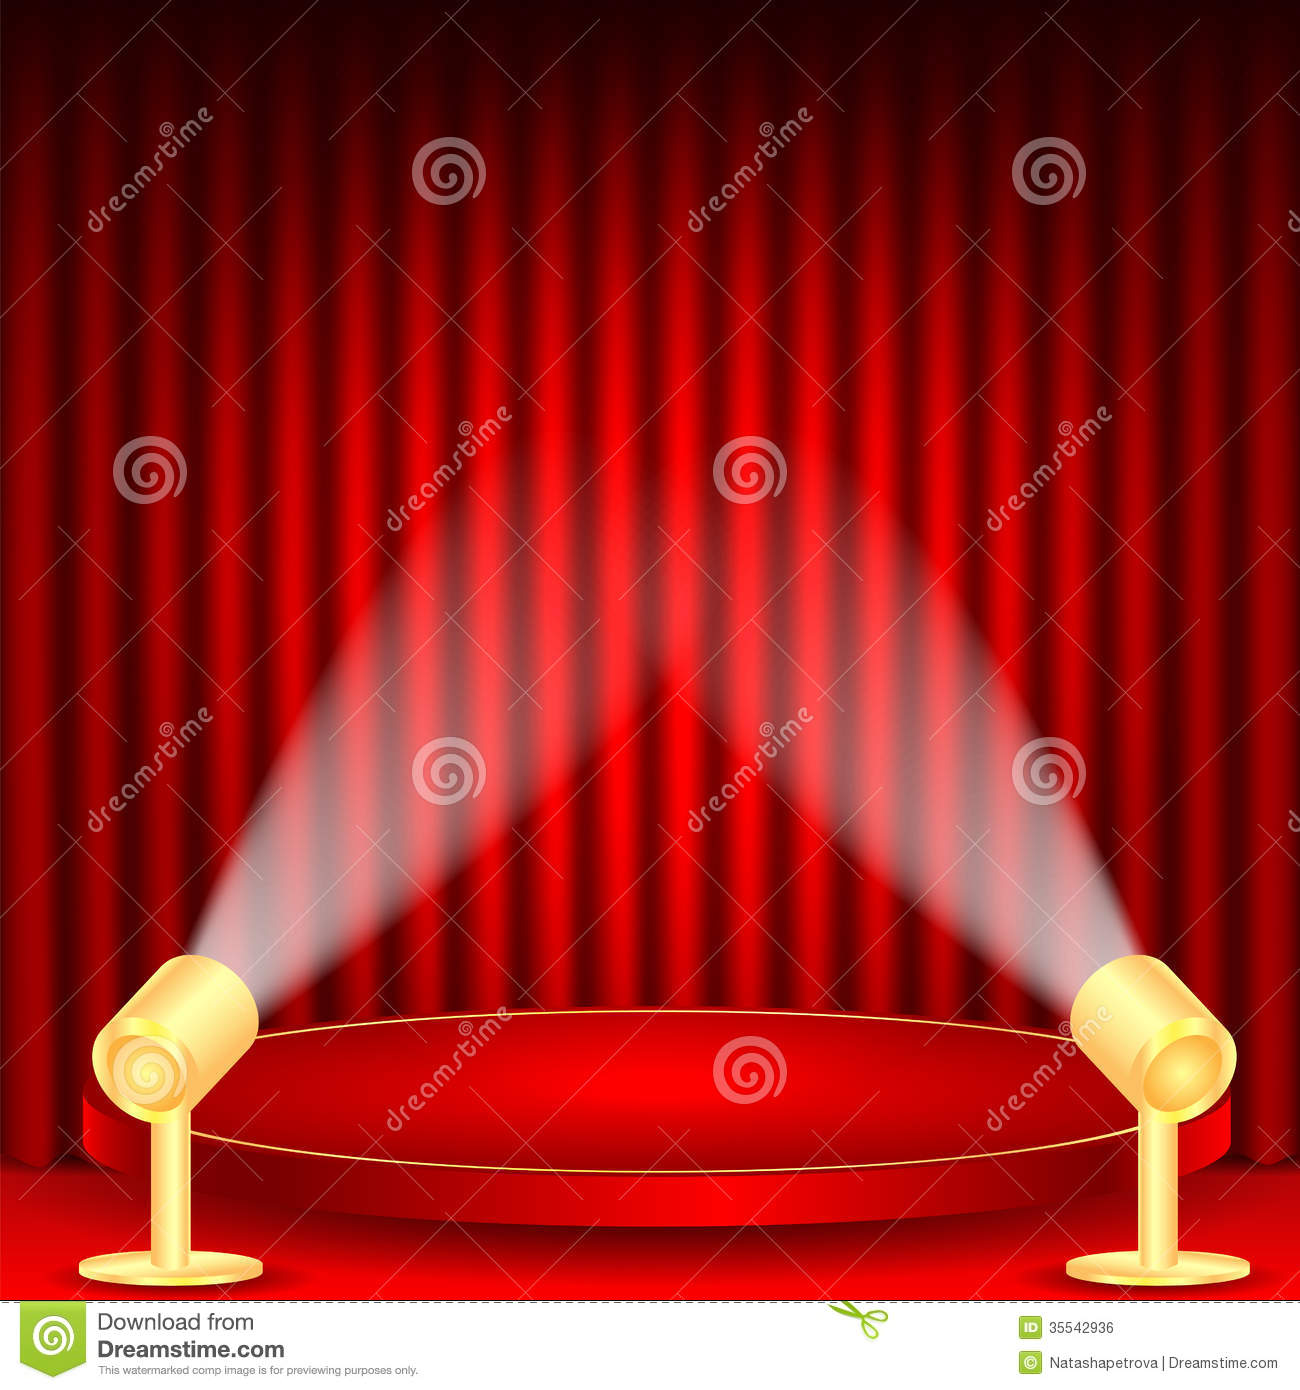 ... curtains-scene-illuminated-floodlights-red-podium-red-drape-curtains